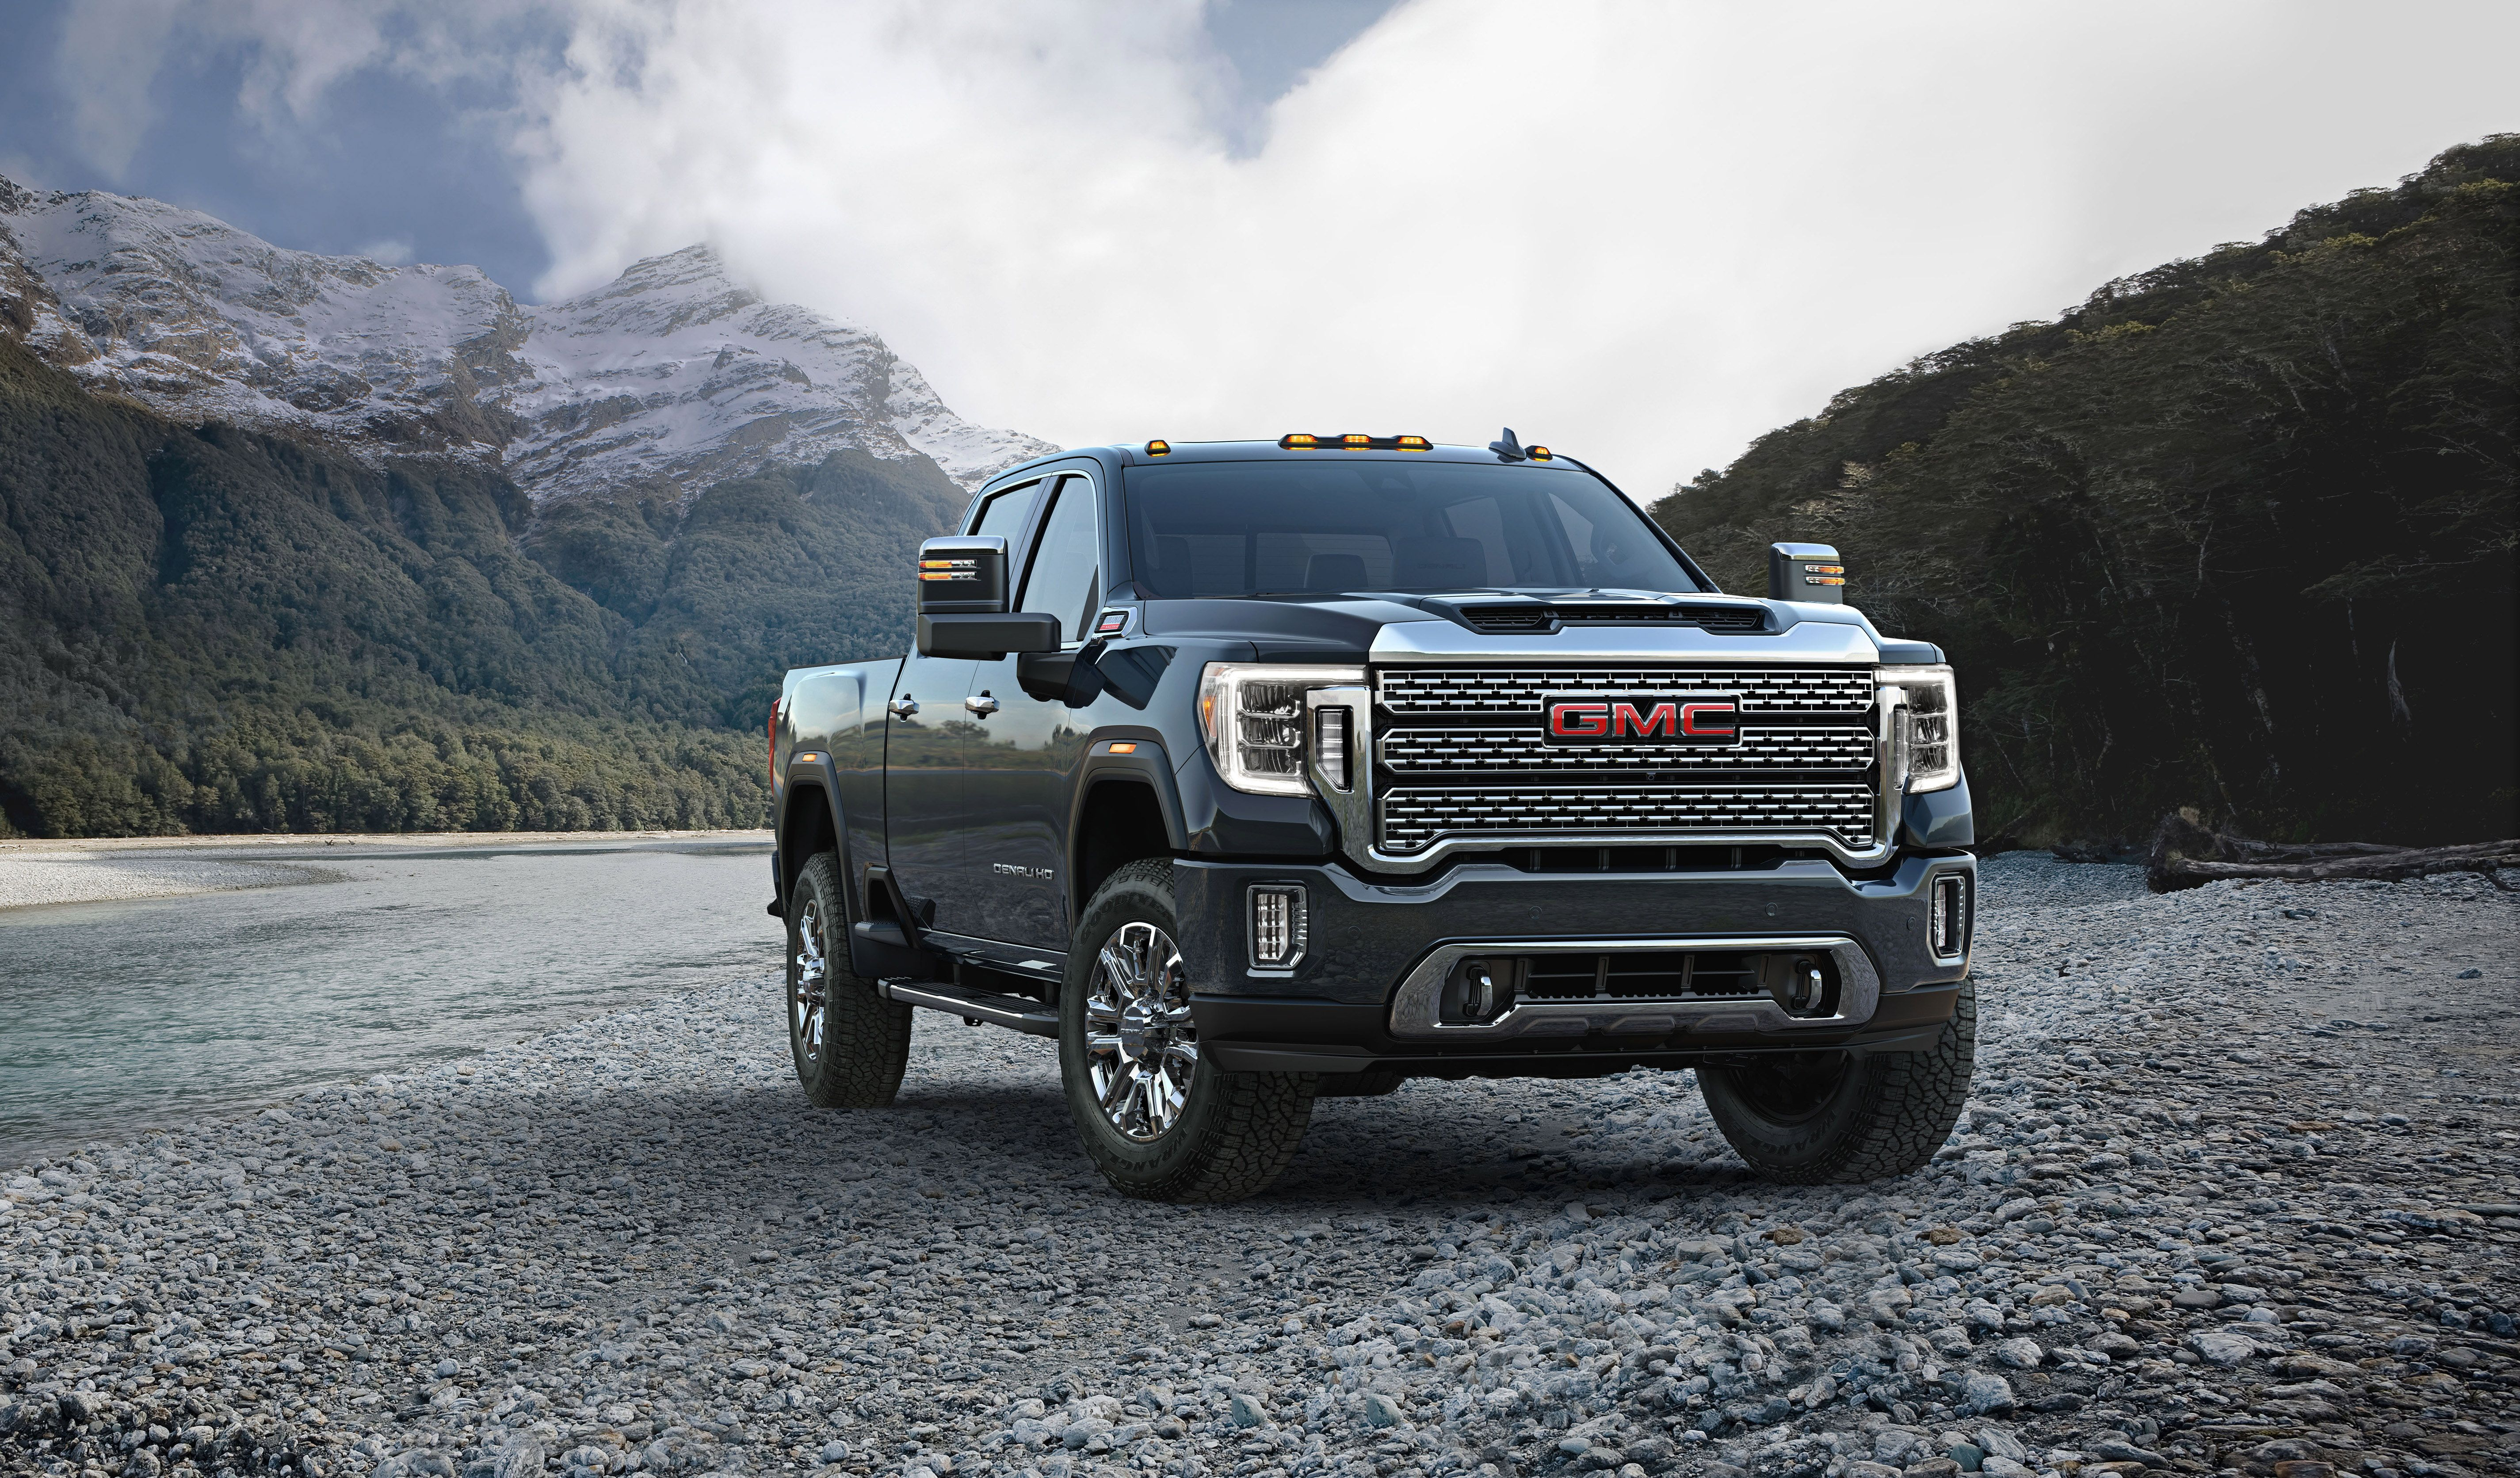 2020 Gmc Sierra Hd Review, Pricing, And Specs 2020 Gmc Sierra 2500Hd At4 Price, Colors, Specs